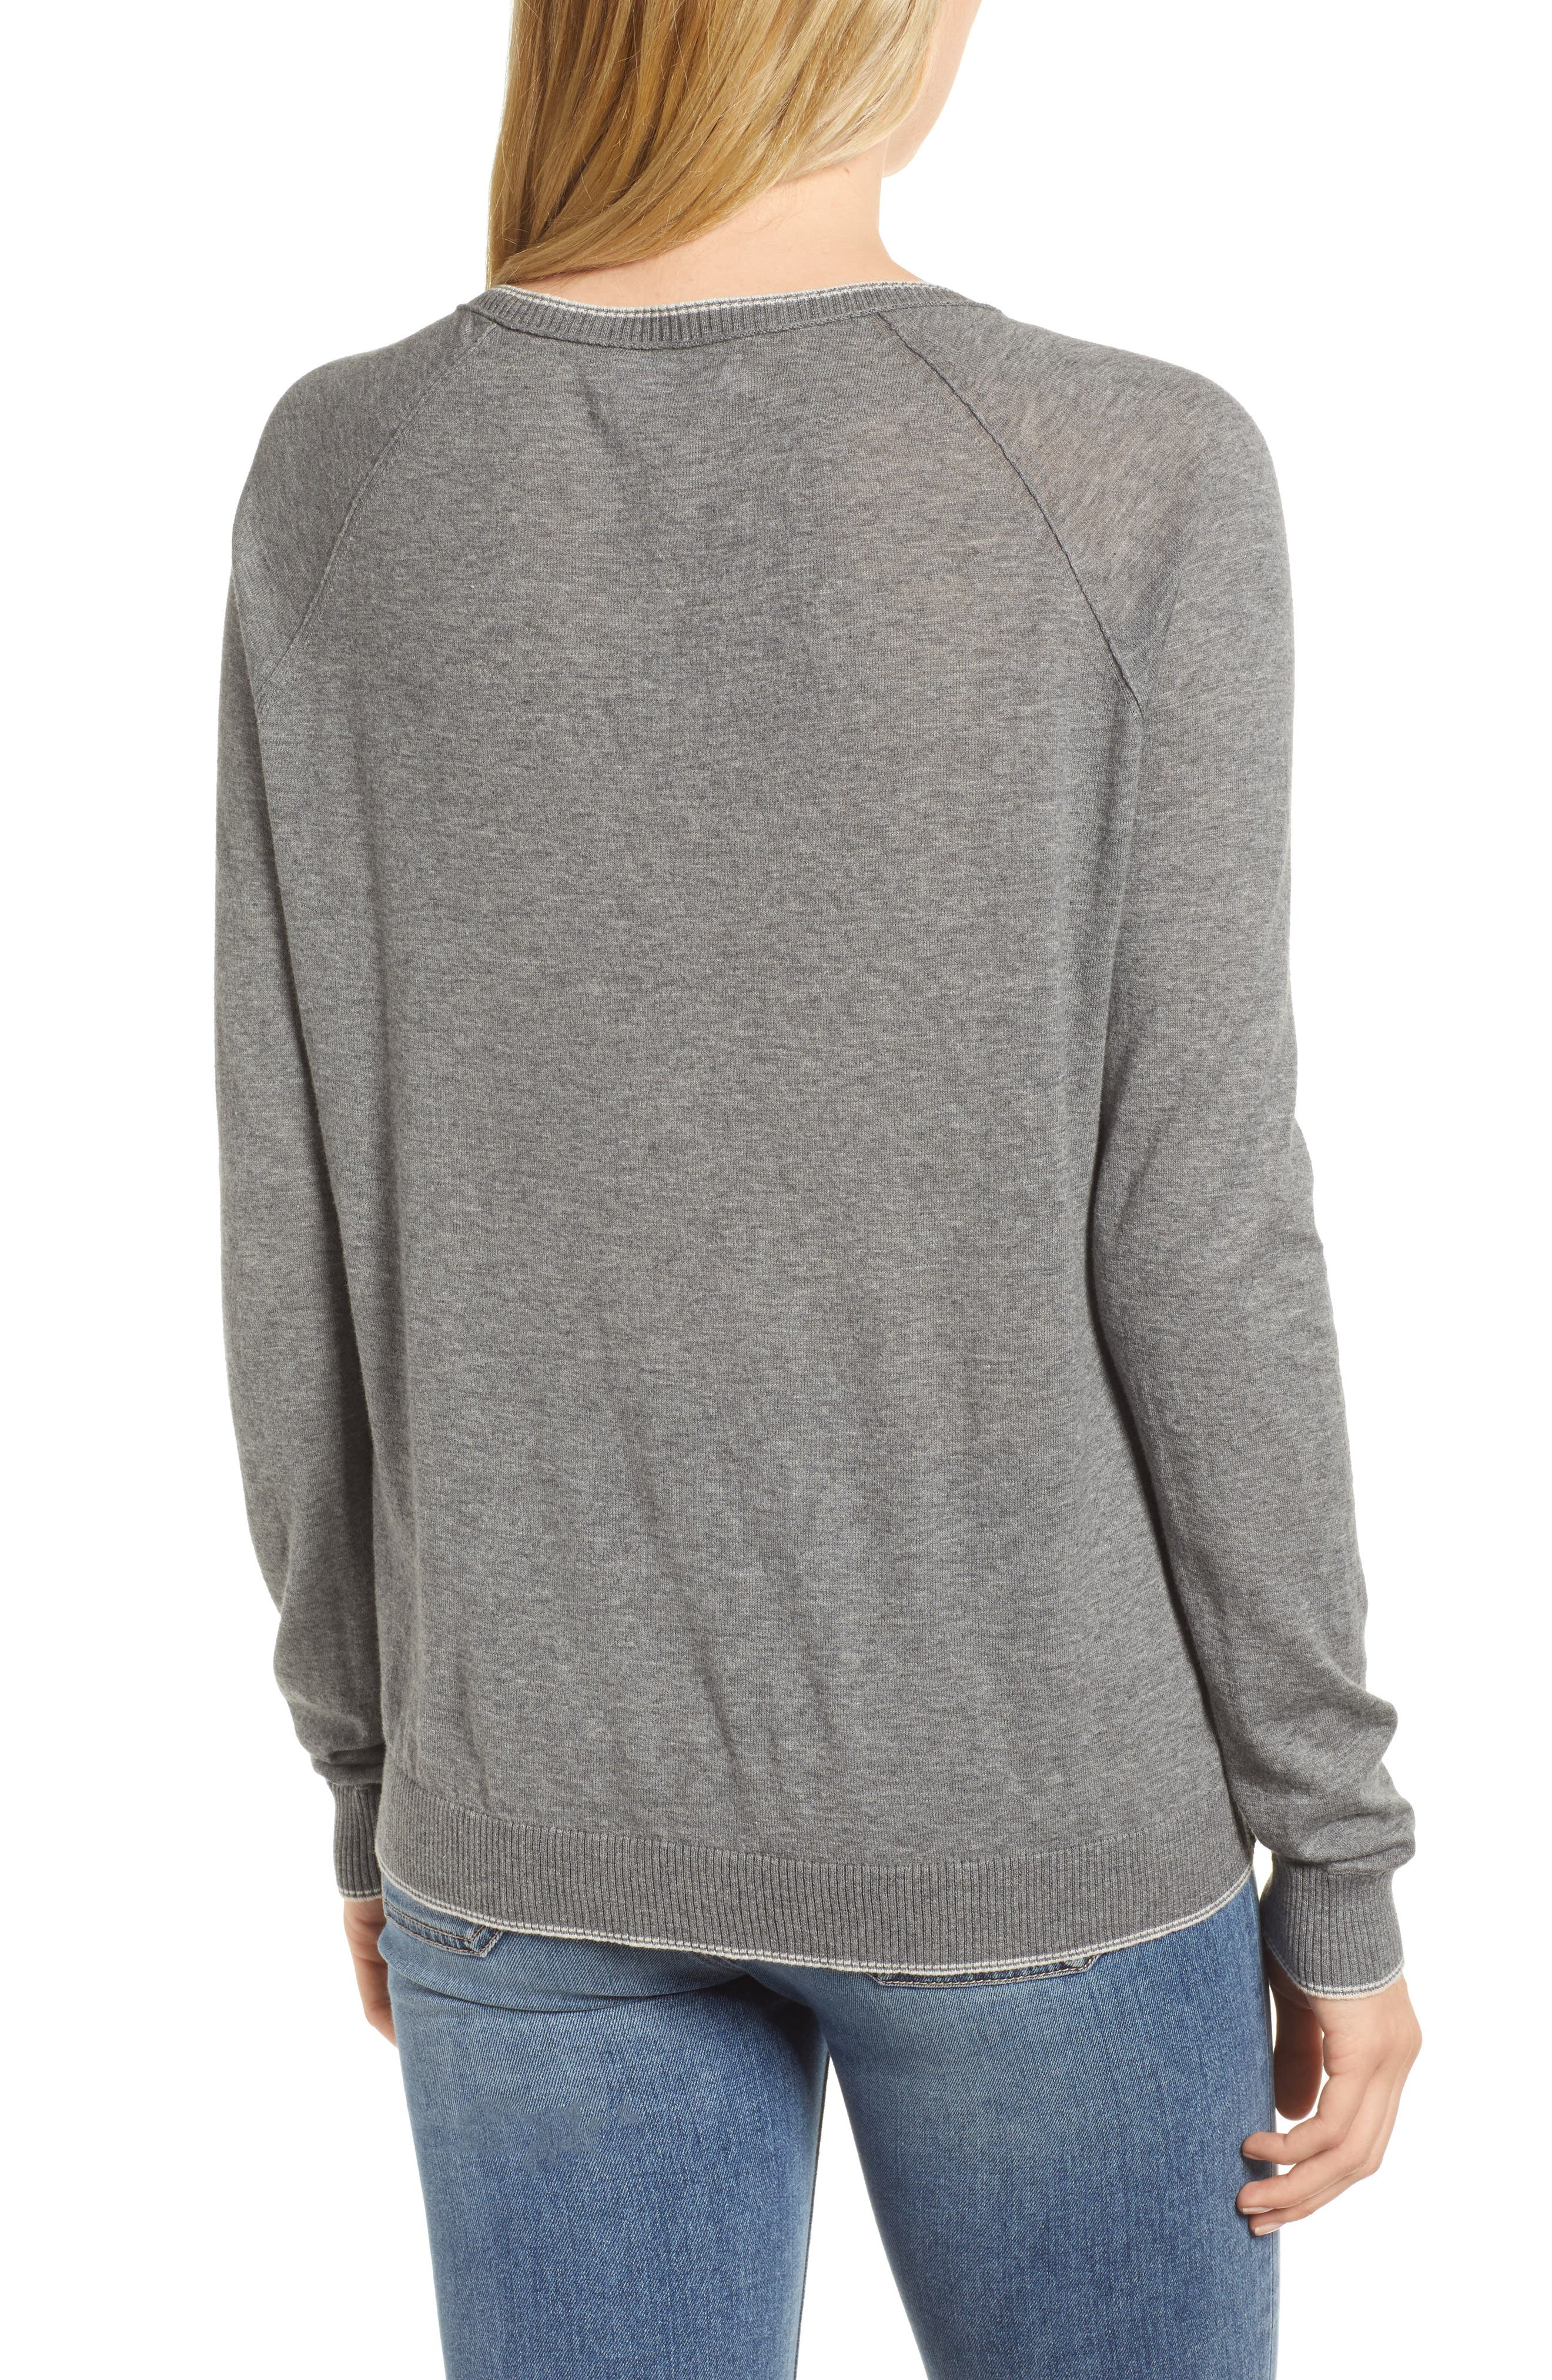 Lux Cotton Sweater,                             Alternate thumbnail 2, color,                             Heather Grey